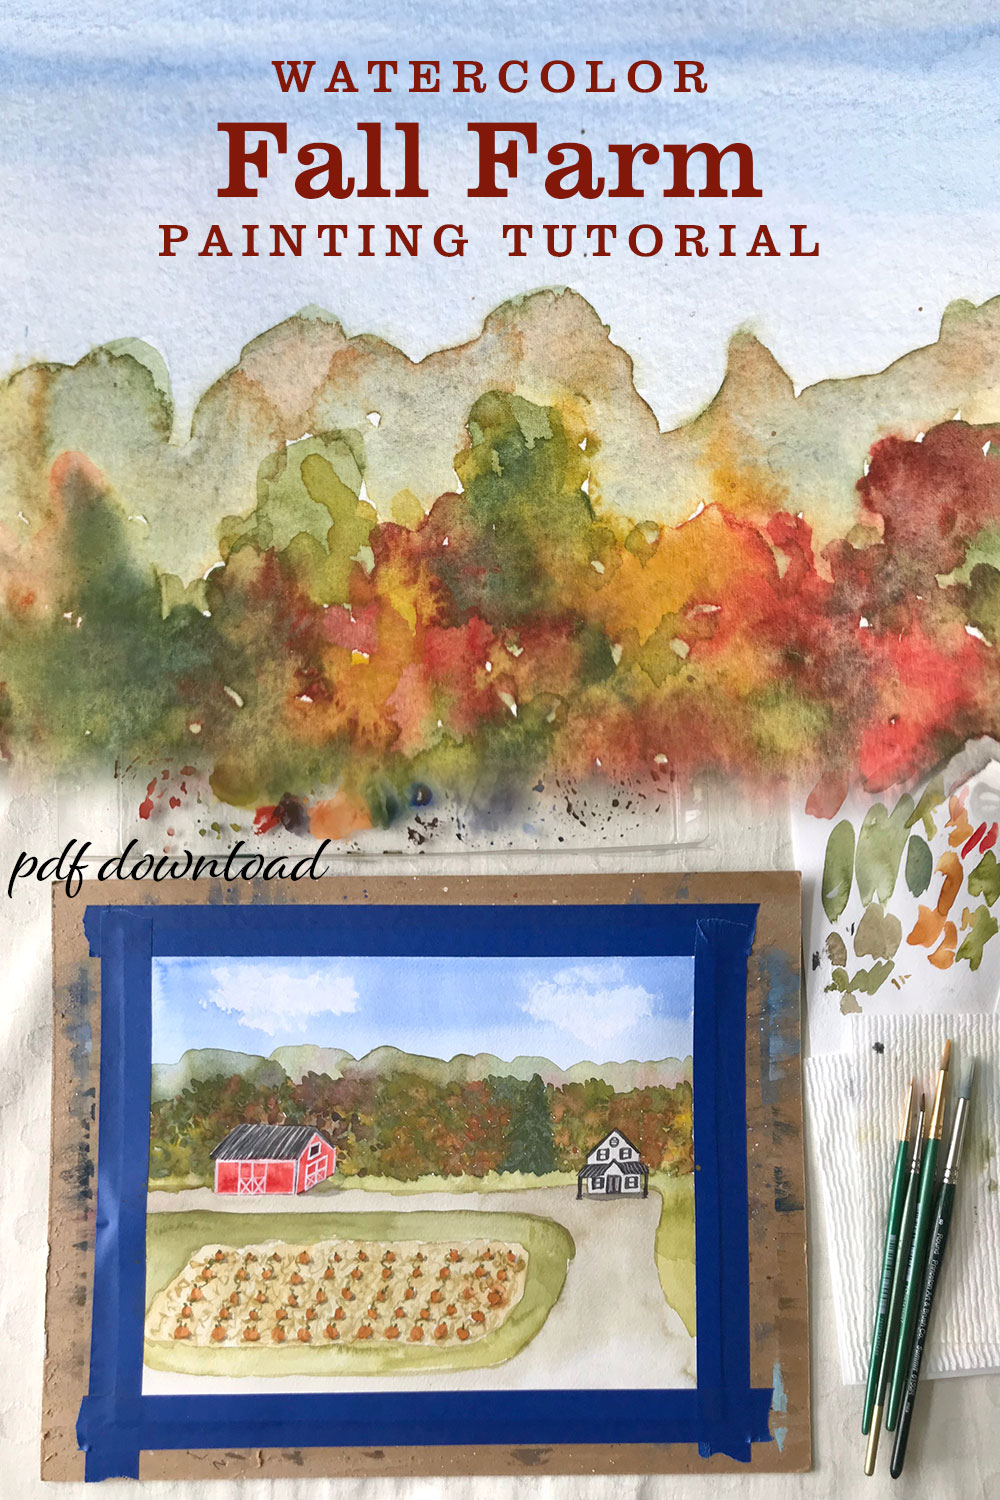 Fall Painting Idea Watercolor Fall Farm with Pumpkins Tutorial